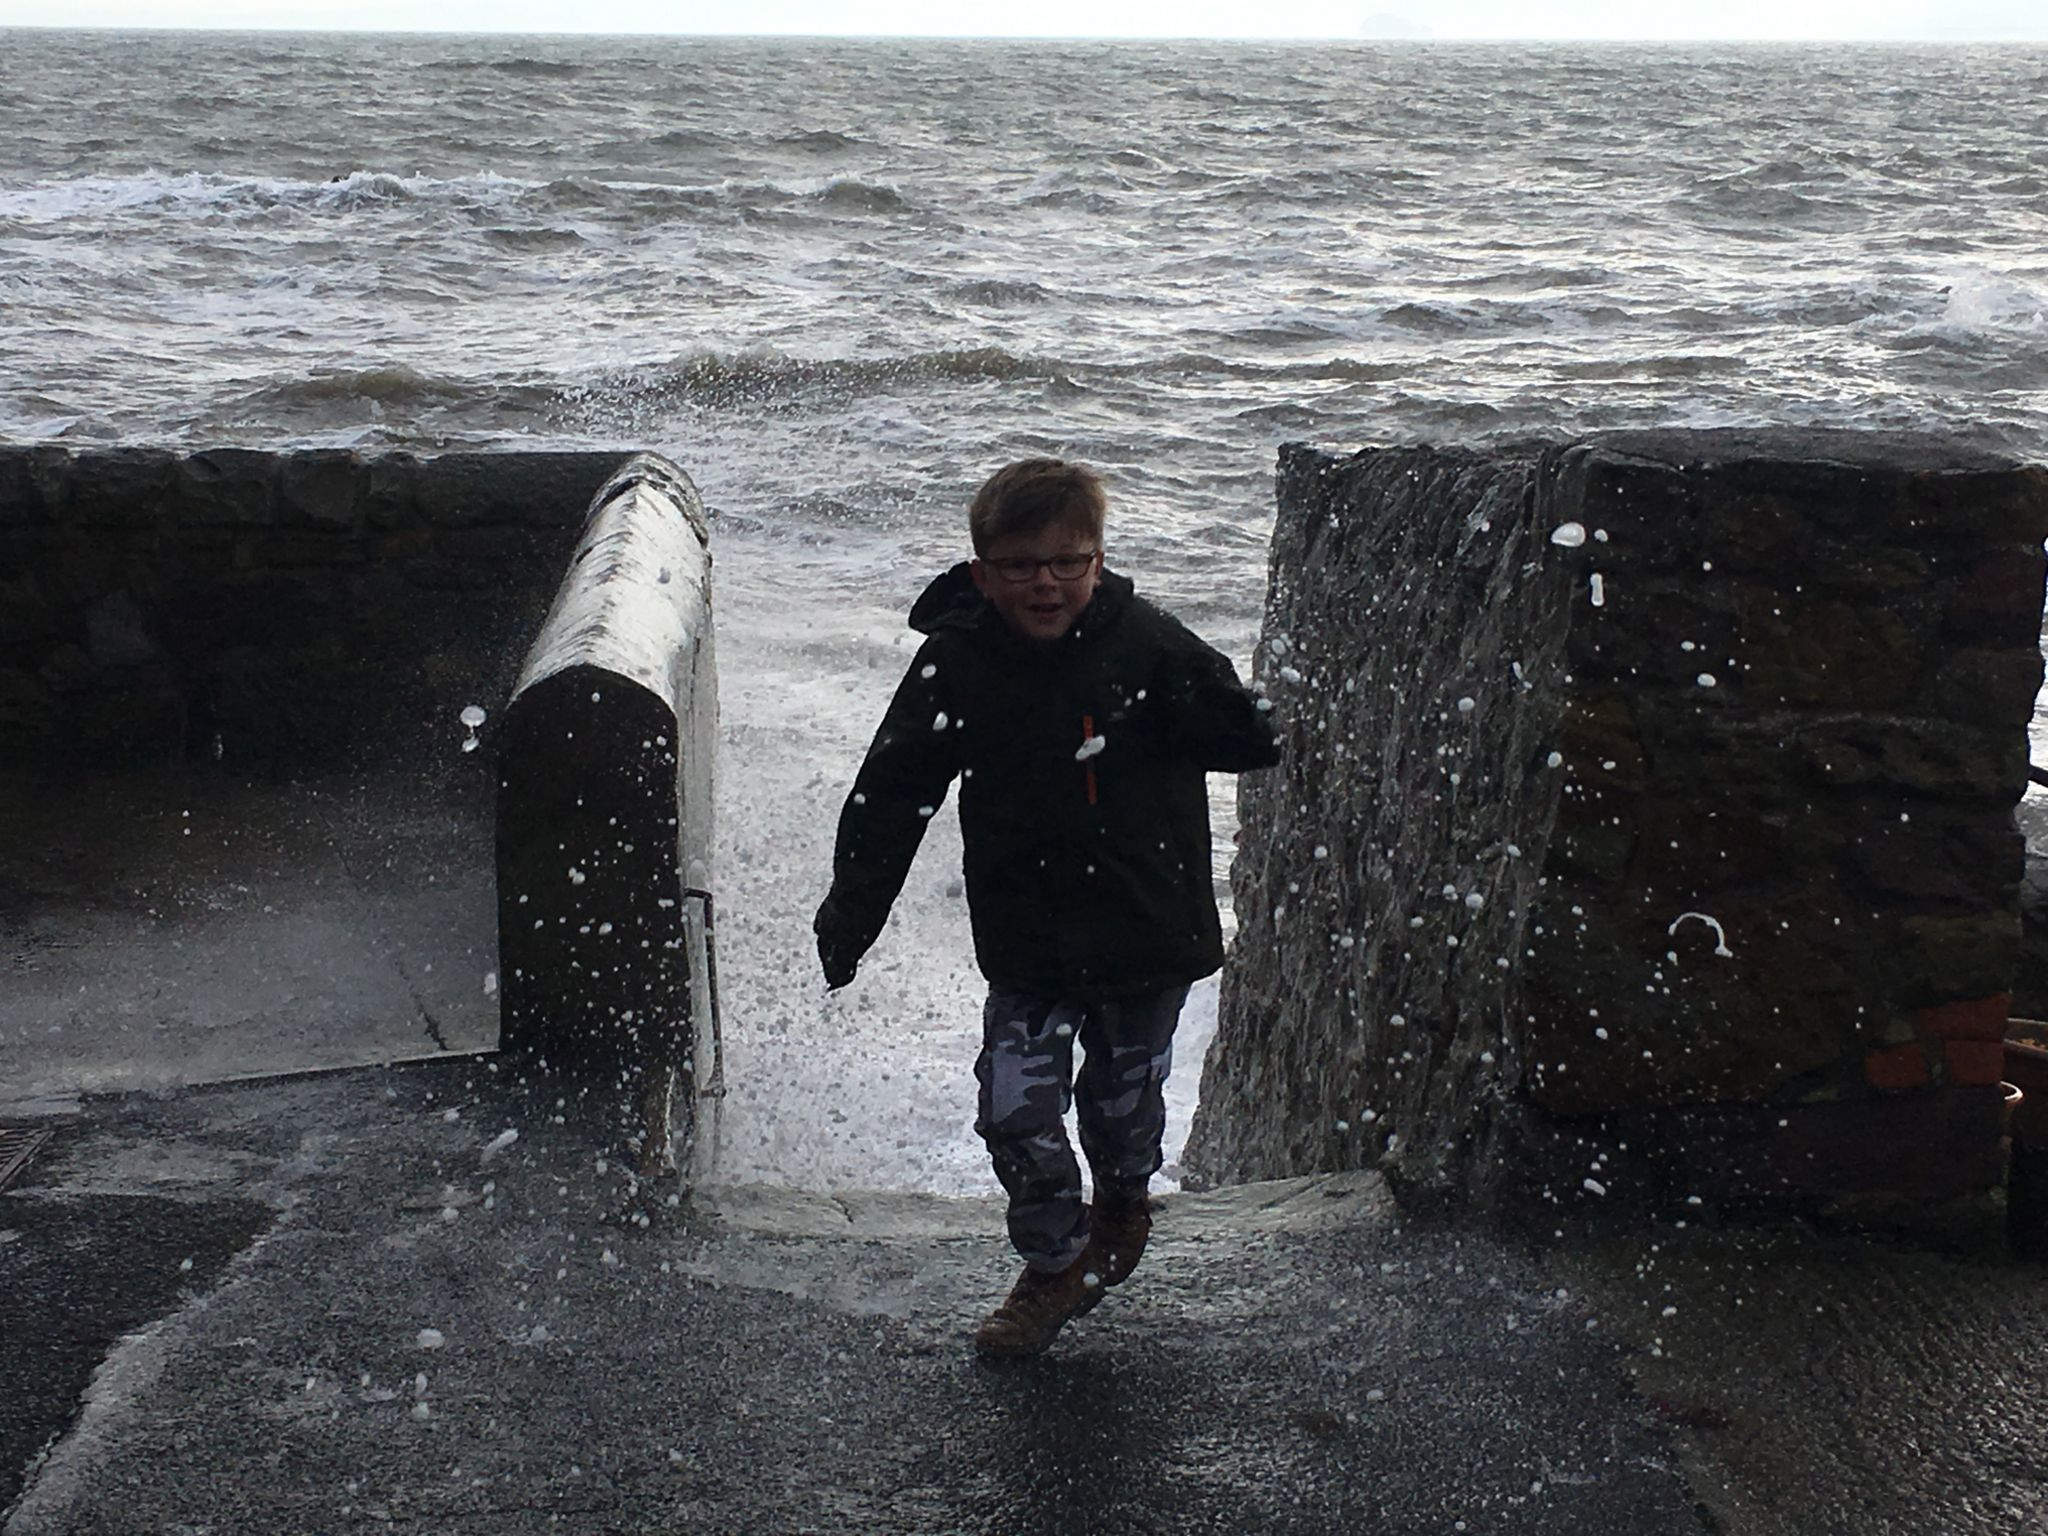 Boy running away from waves